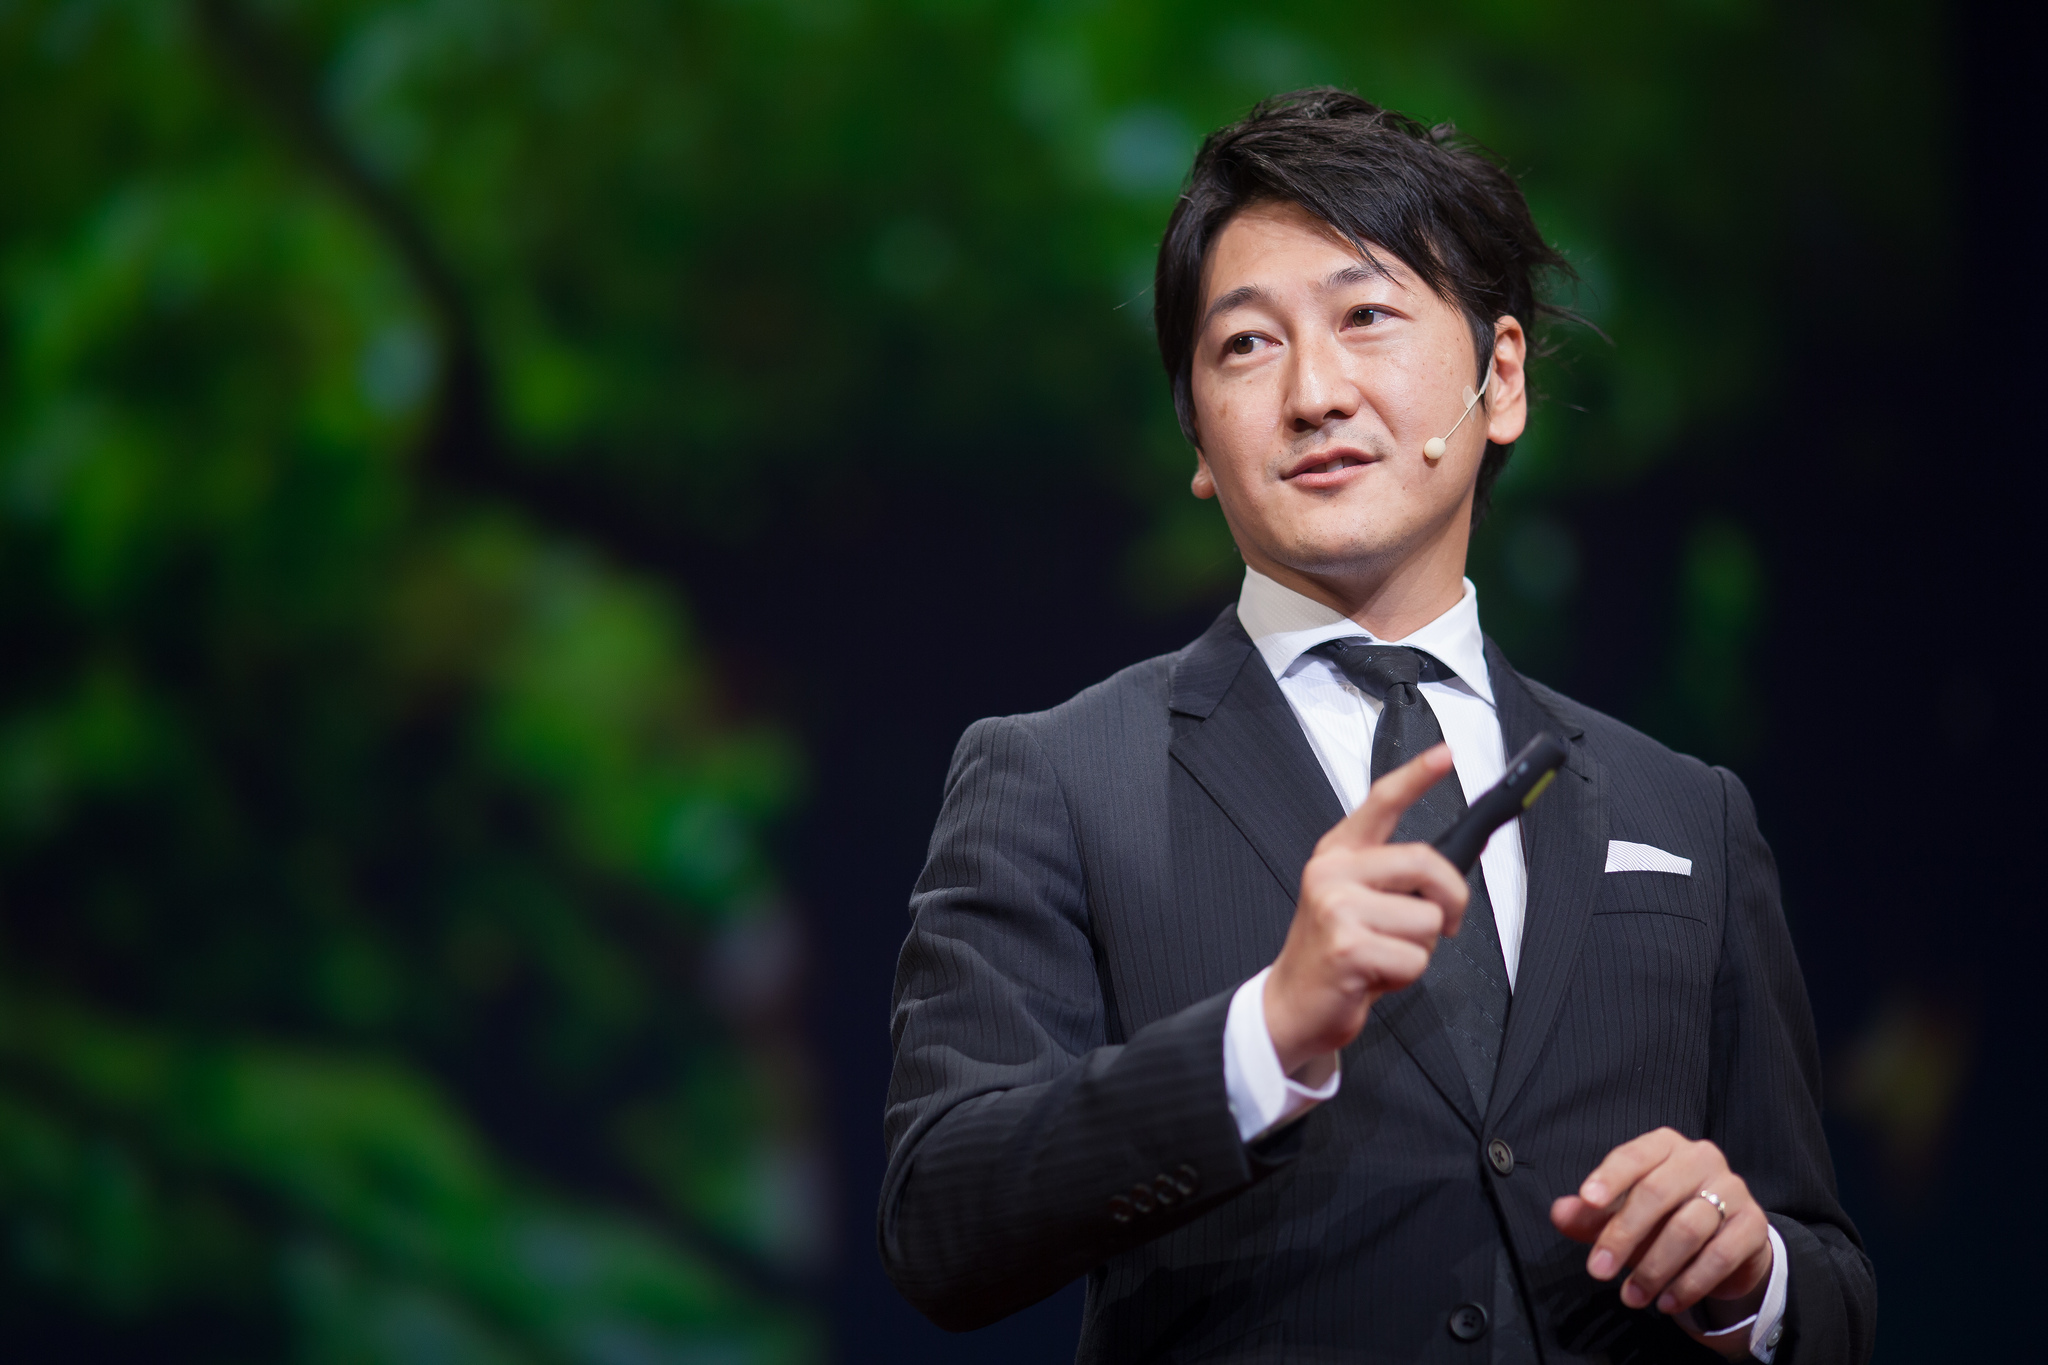 Former NHK anchor Jun Hori speaks at a TEDx event in Kyoto, Japan, about opening Japanese journalism to non-traditional sources.